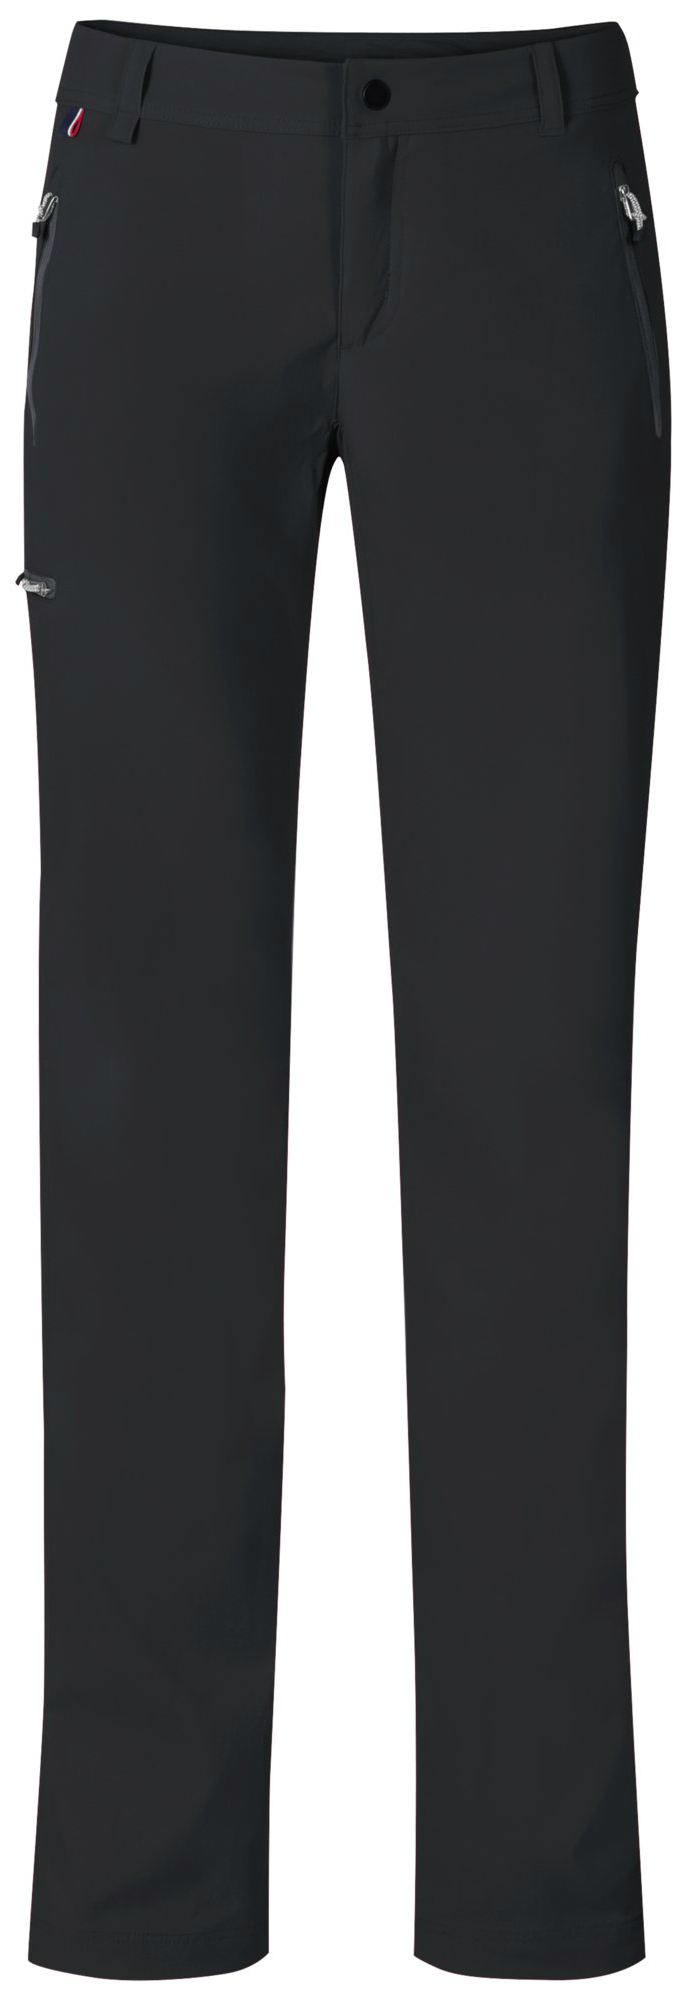 Gibb Outdoors - Odlo - Ladies Wedgemount Pants